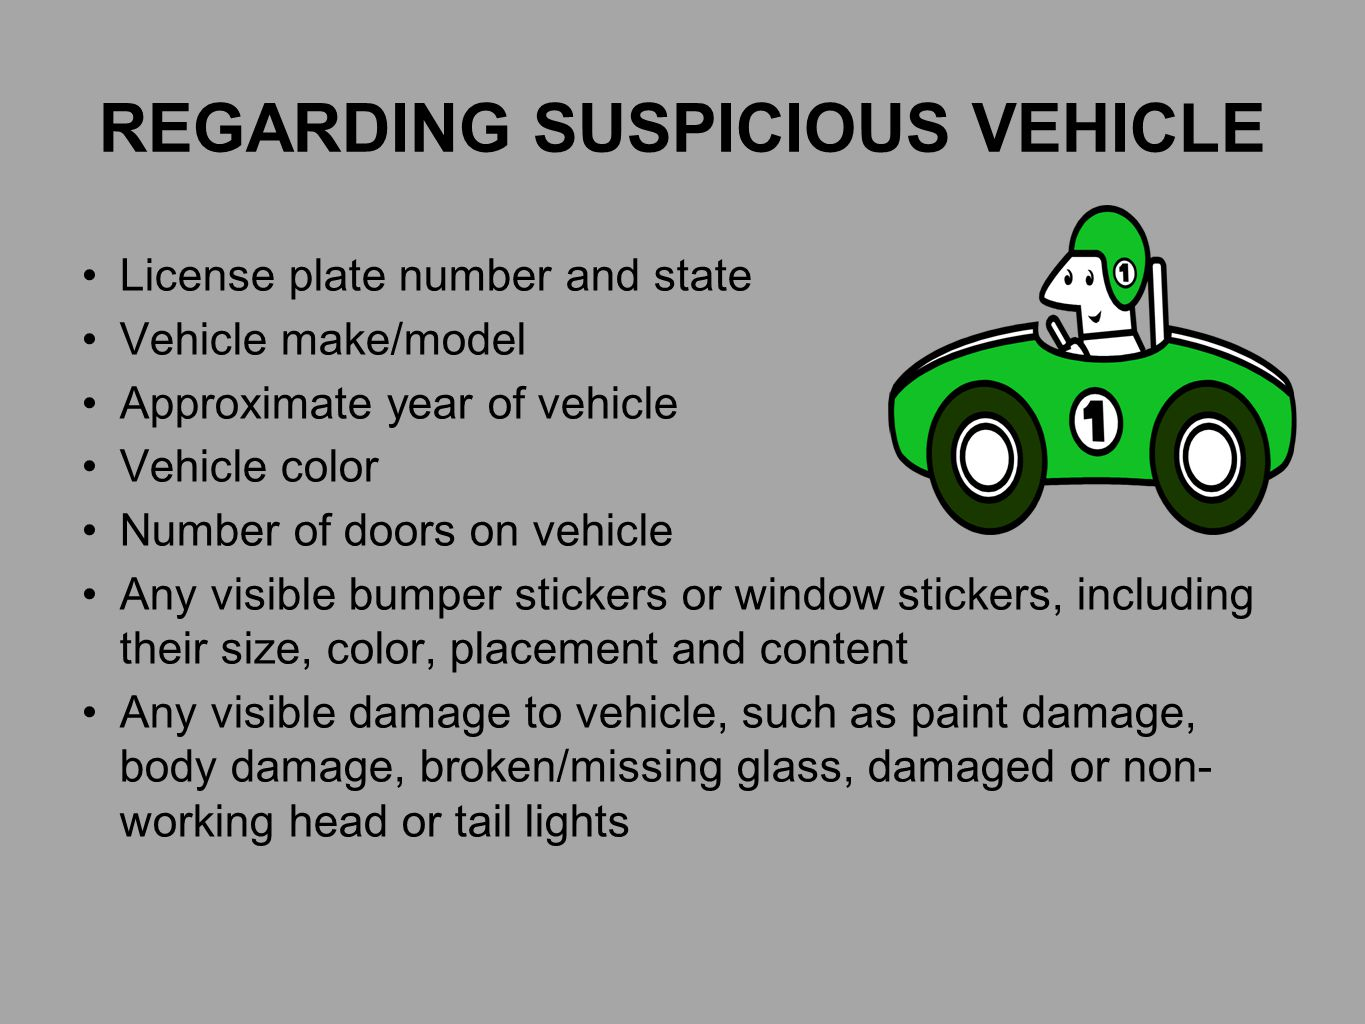 REGARDING SUSPICIOUS VEHICLE License plate number and state Vehicle make/model Approximate year of vehicle Vehicle color Number of doors on vehicle Any visible bumper stickers or window stickers, including their size, color, placement and content Any visible damage to vehicle, such as paint damage, body damage, broken/missing glass, damaged or non- working head or tail lights